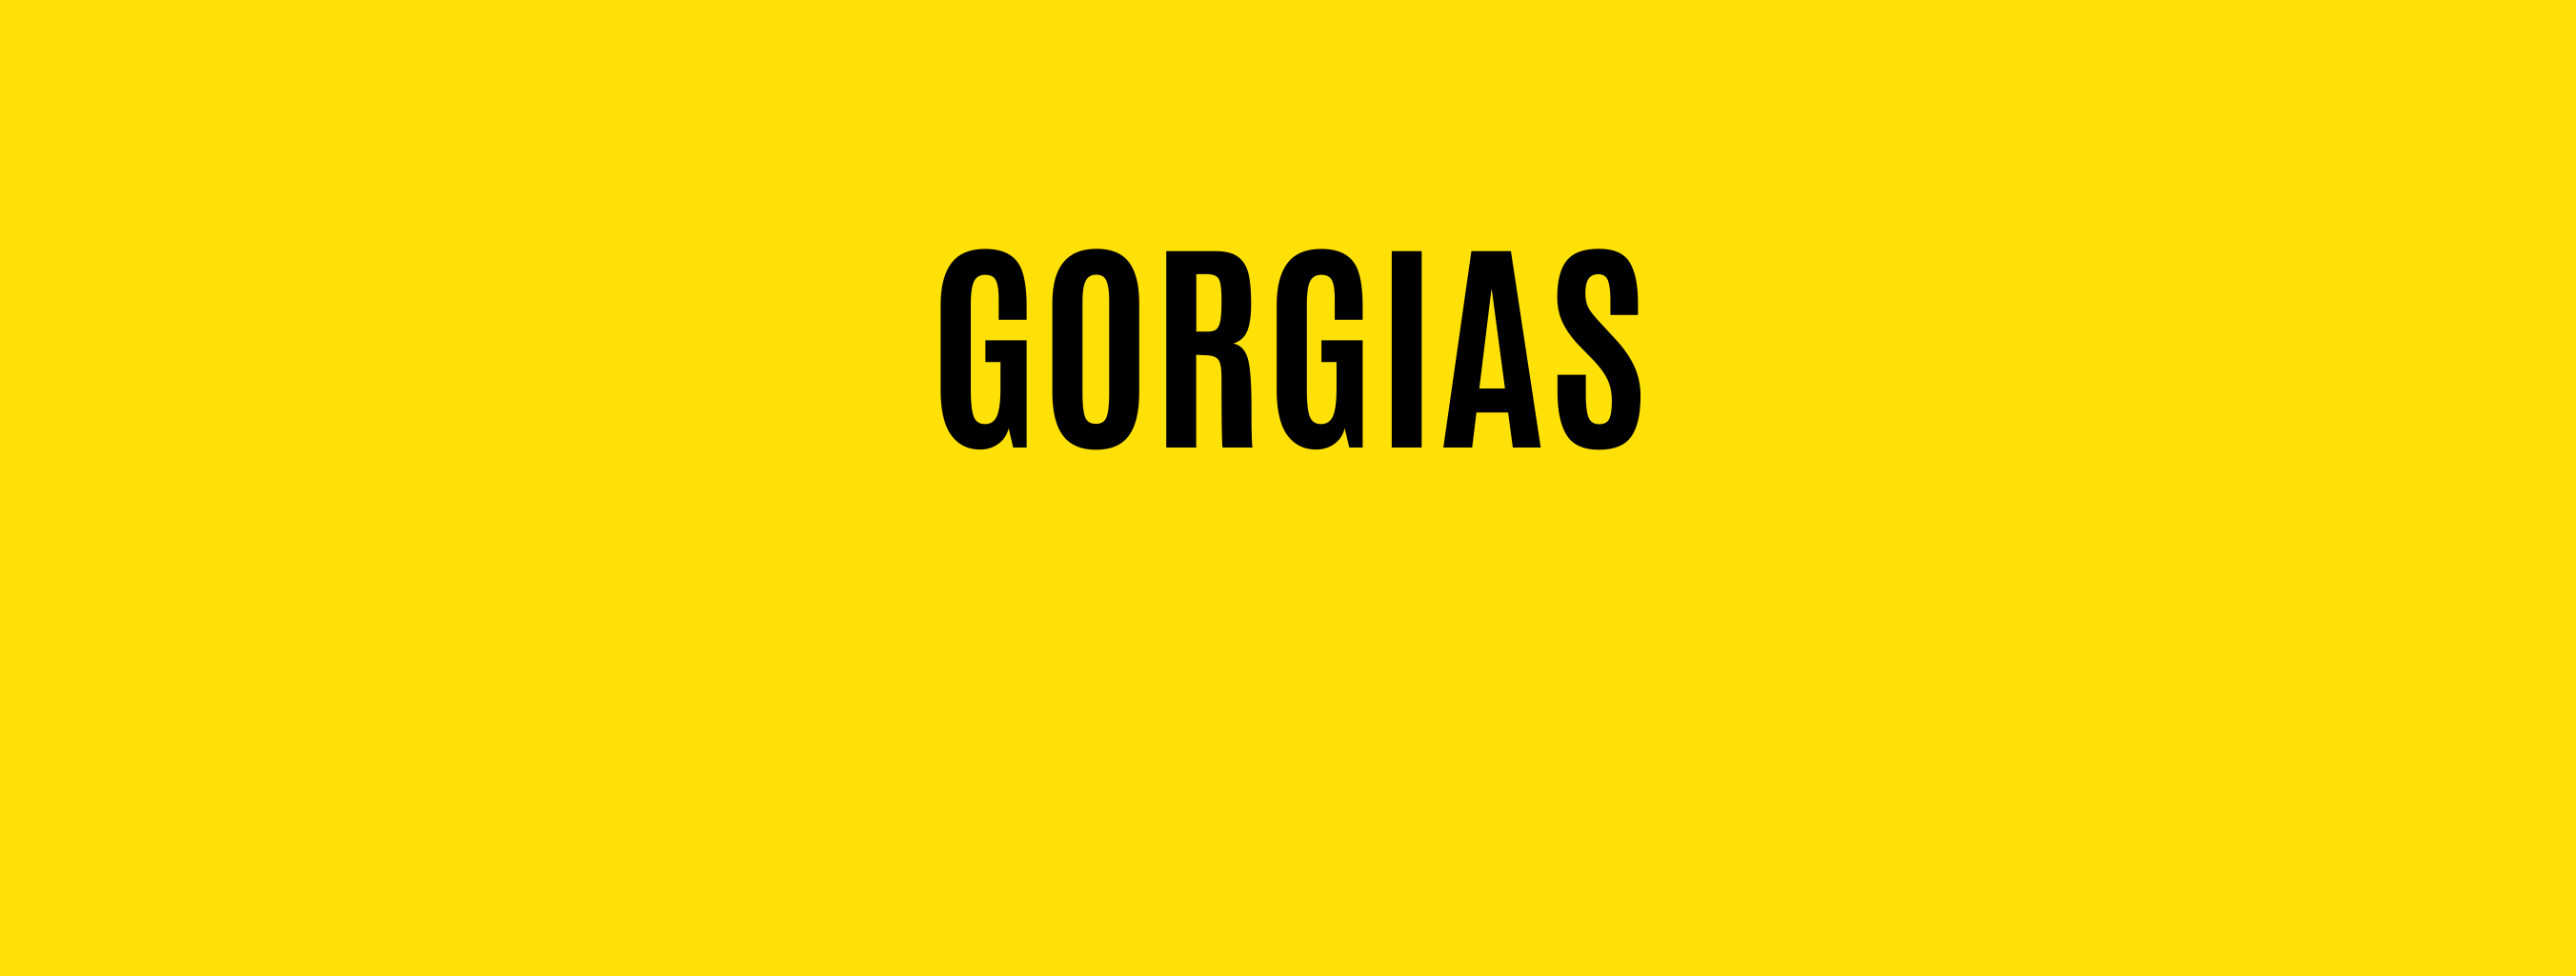 Gorgias Customer Support Helpdesk Application